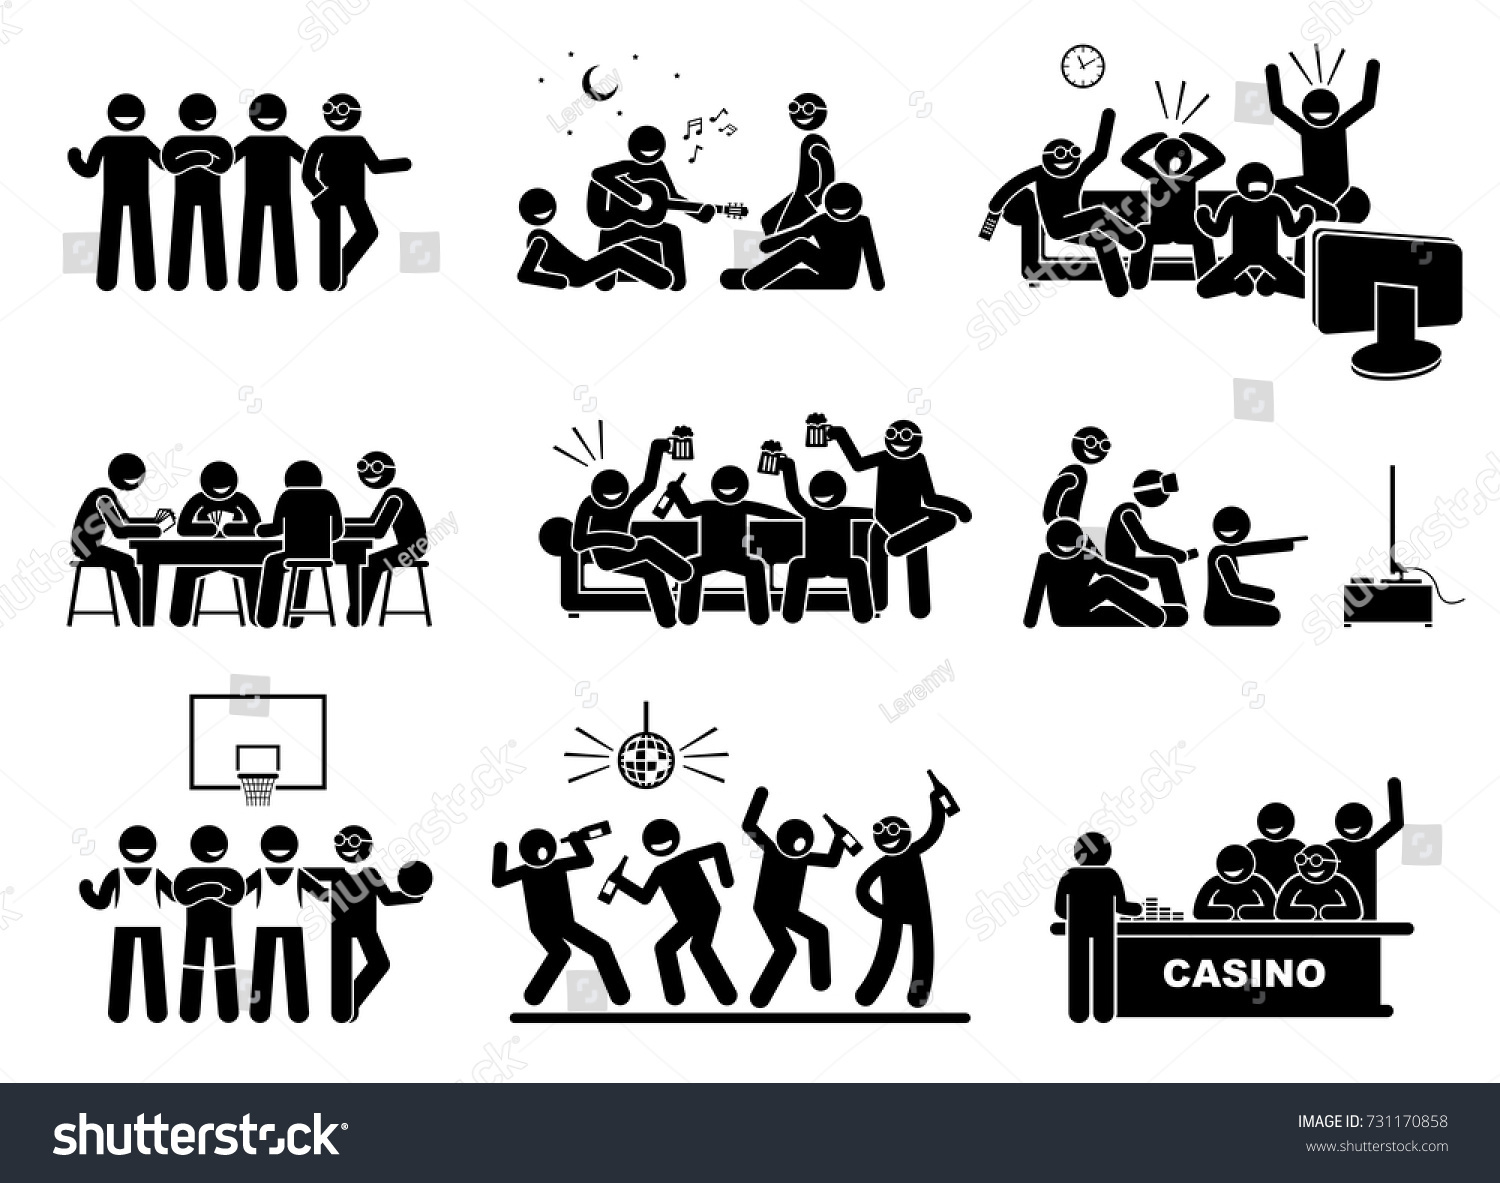 Men hanging out group best friends stock vector 731170858 for Hanging groups of pictures